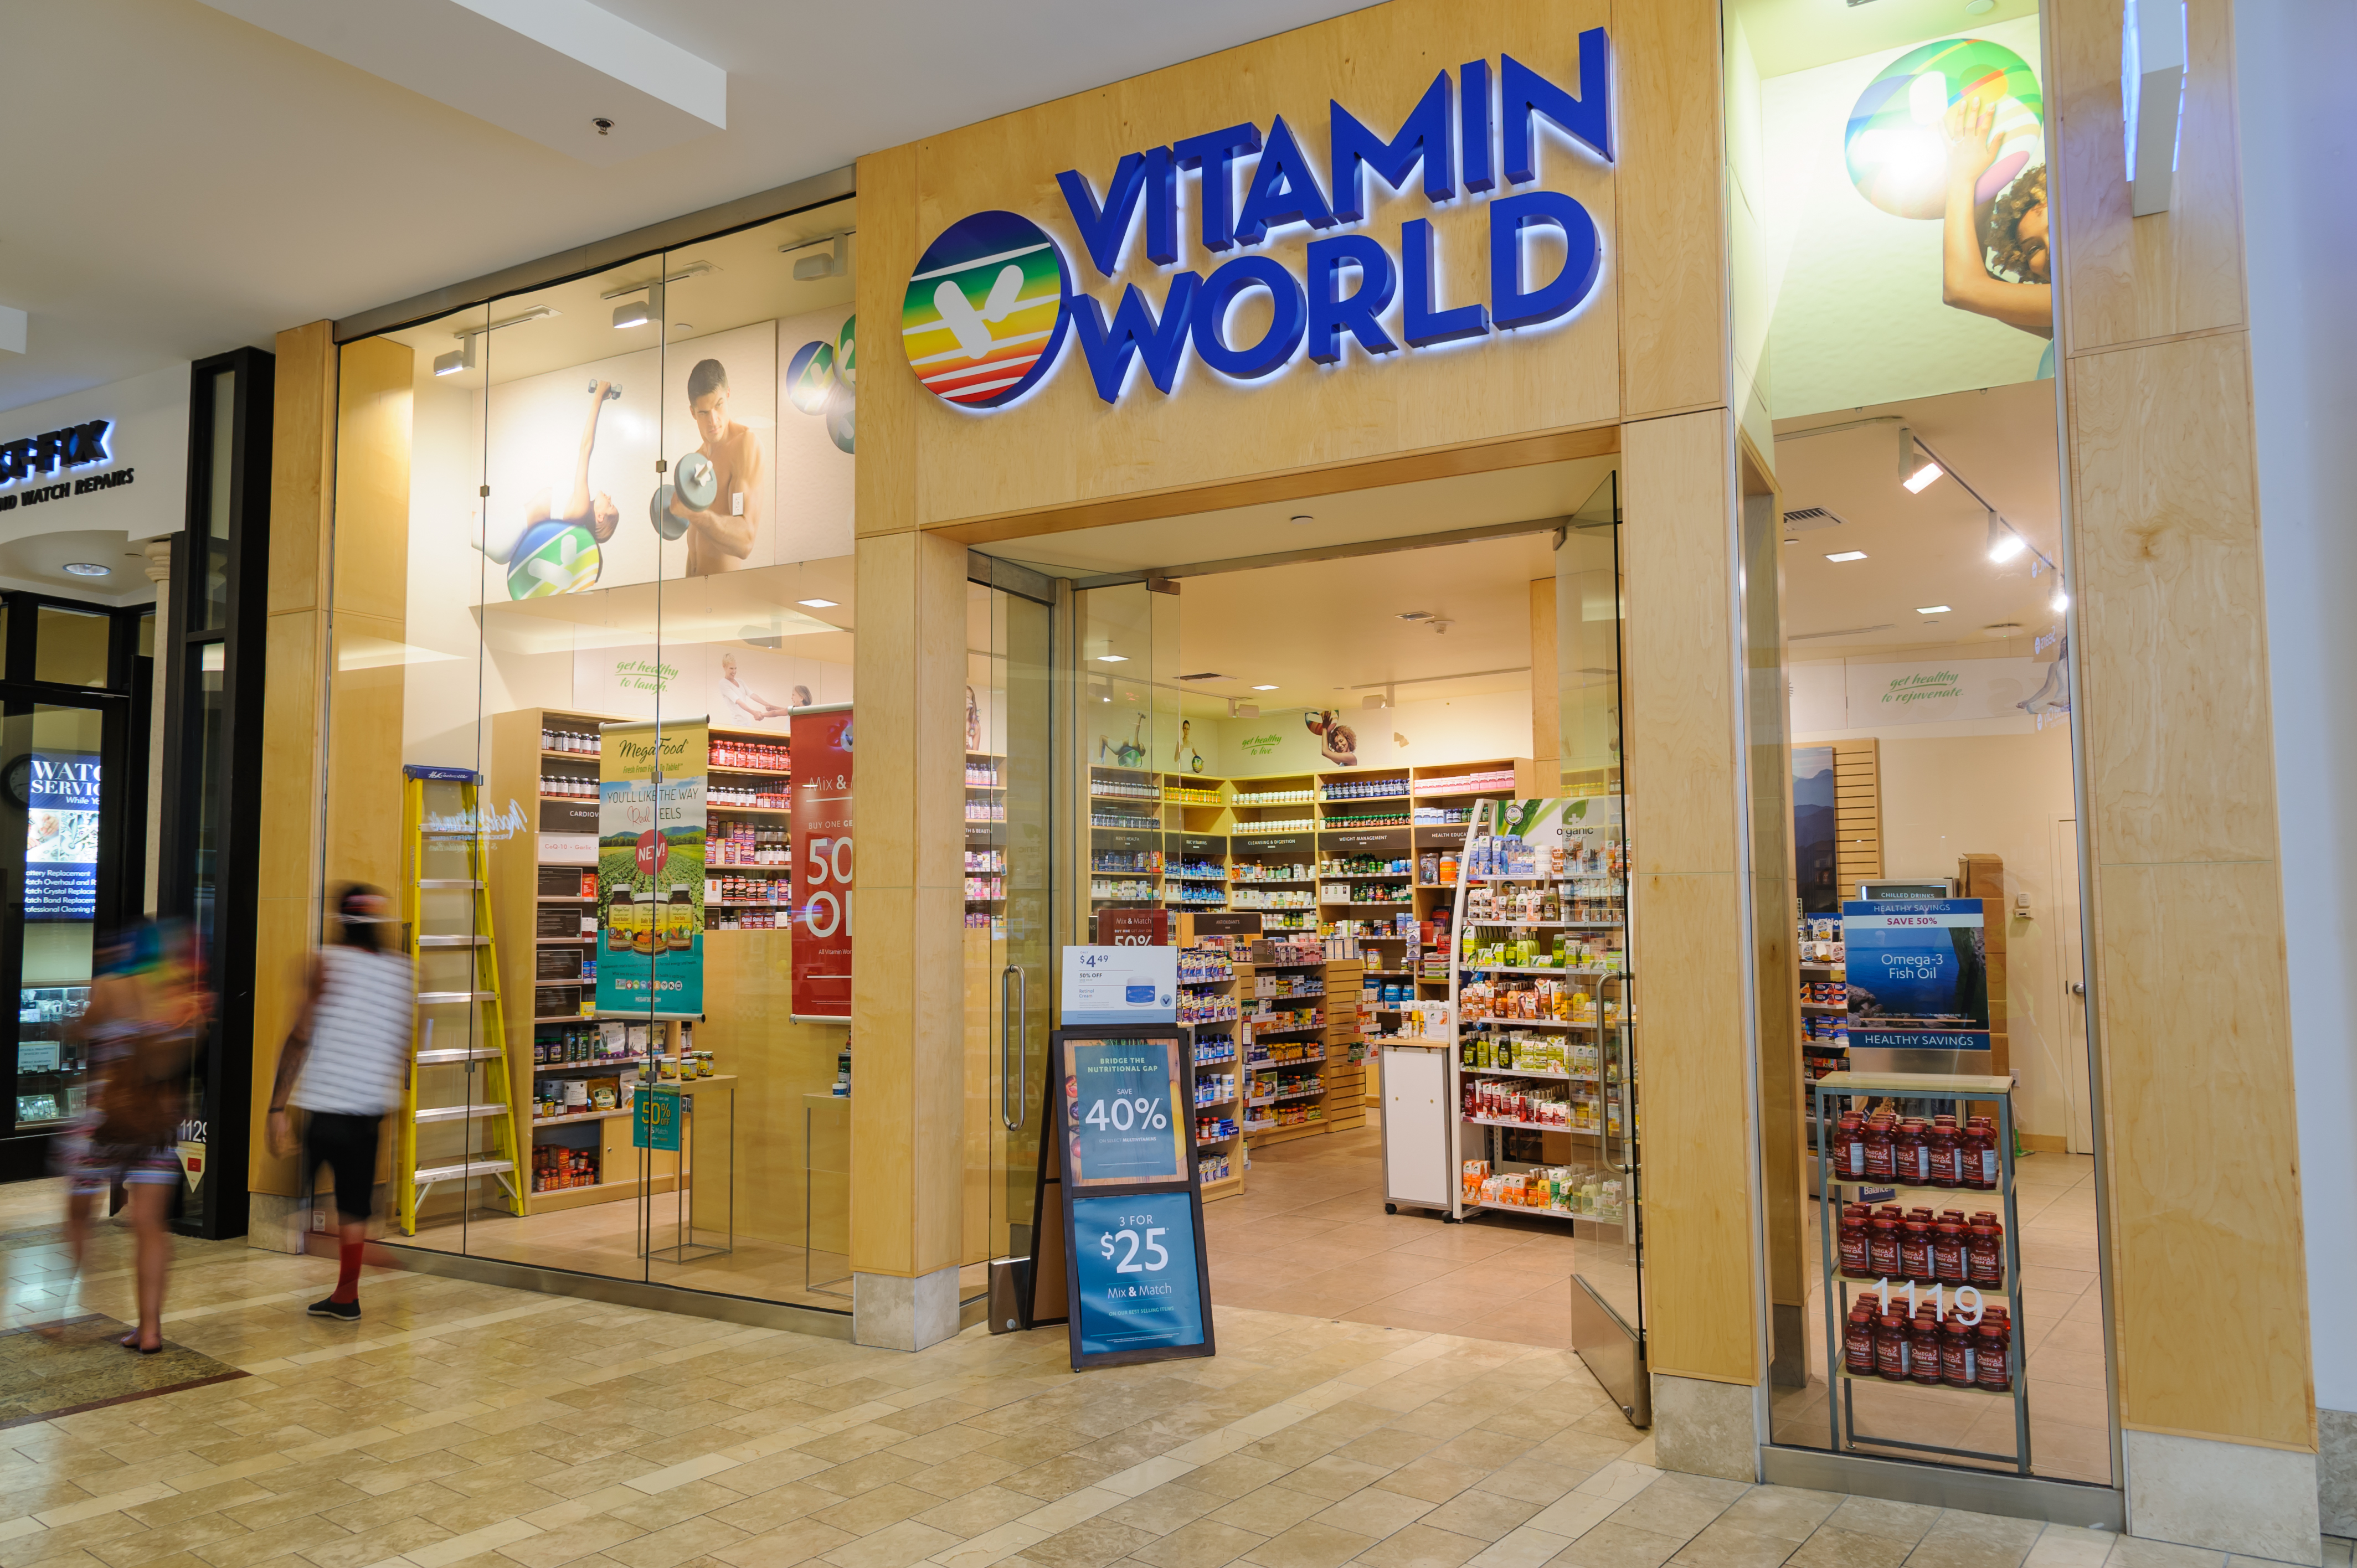 Vitamin World store